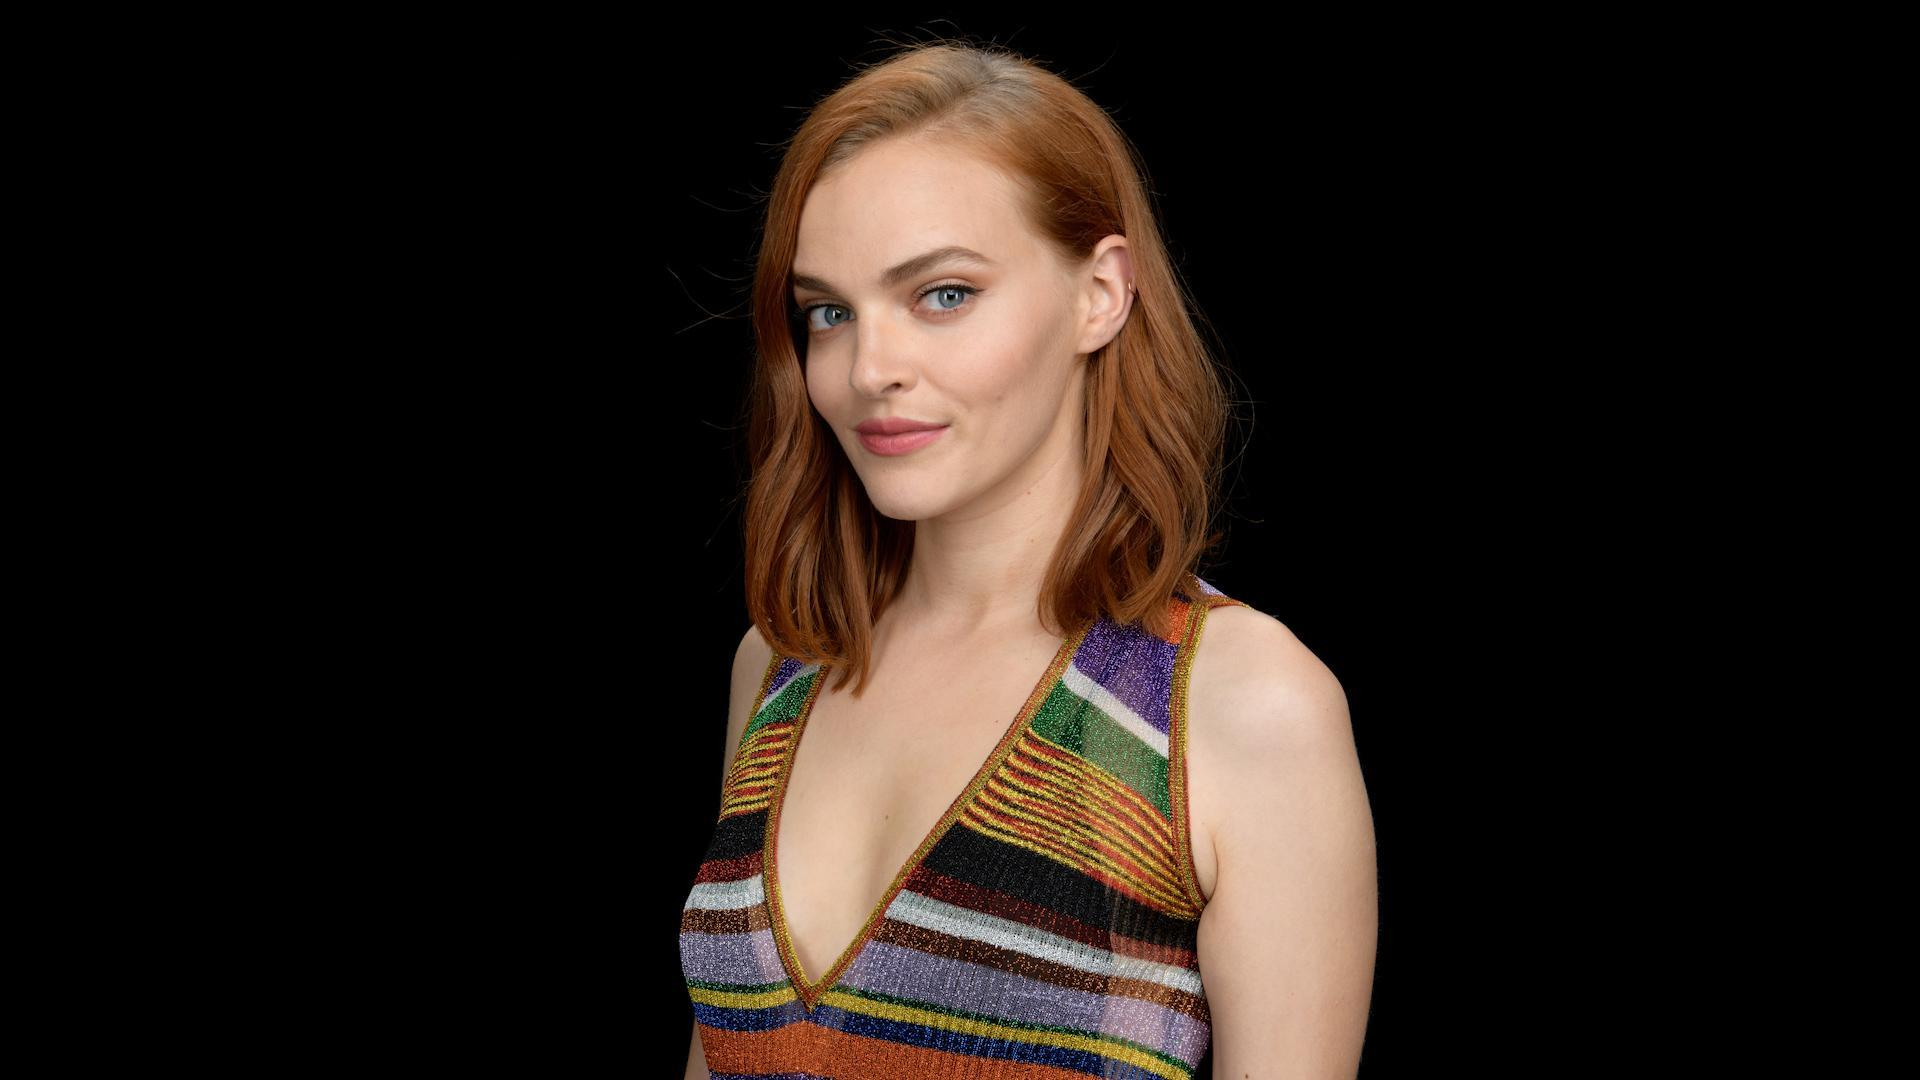 Snapchat Madeline Brewer nude (48 foto and video), Topless, Leaked, Twitter, cleavage 2020